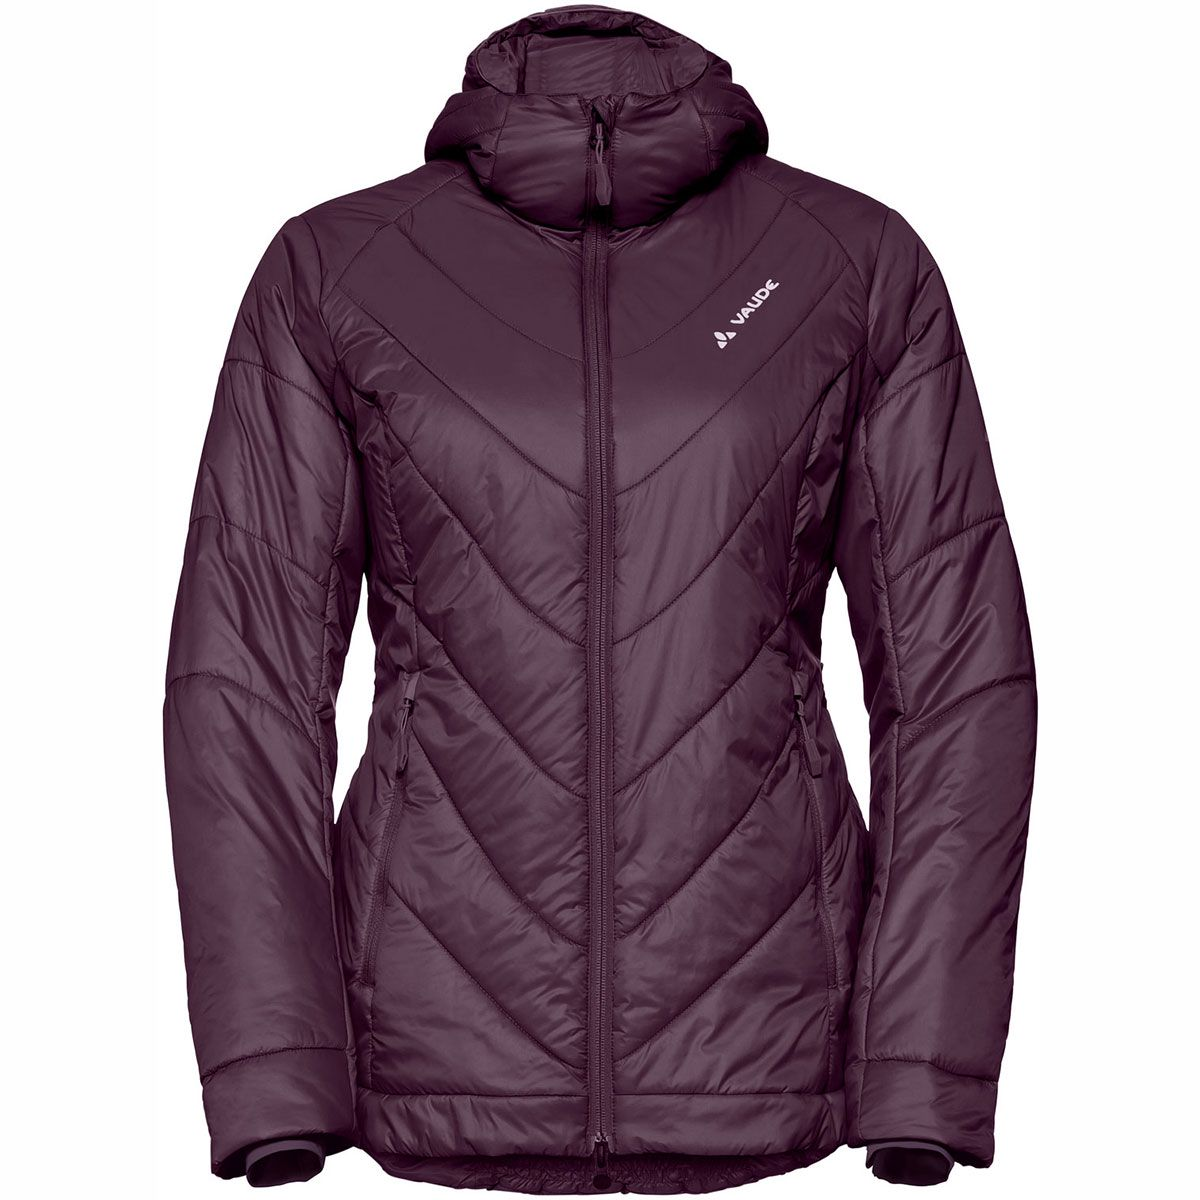 Vaude Damen Back Bowl SYN Jacke (Größe S, Lila) | Isolationsjacken > Damen